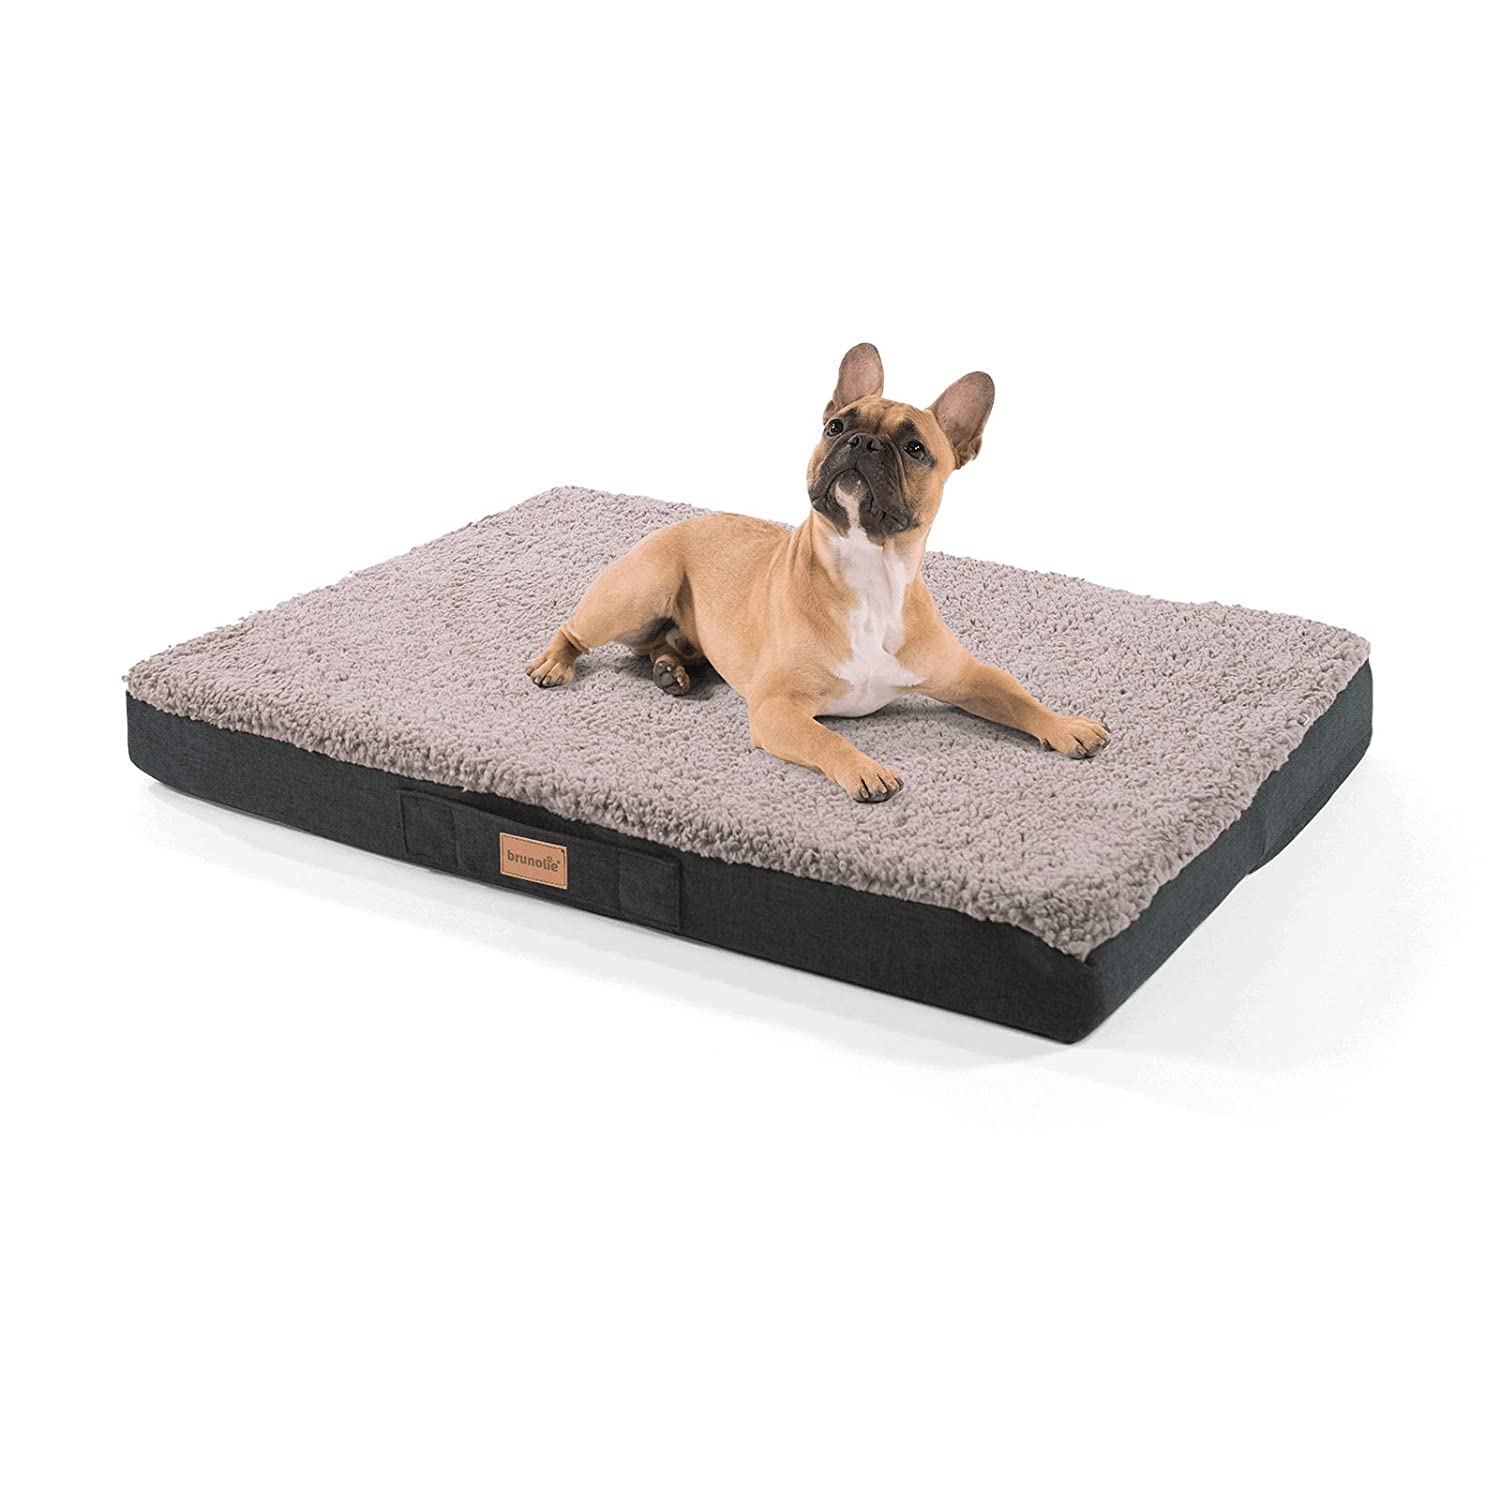 size XL washable and non-slip dog bed with cuddly plush brunolie Balu small dog mat in dark-grey orthopaedic